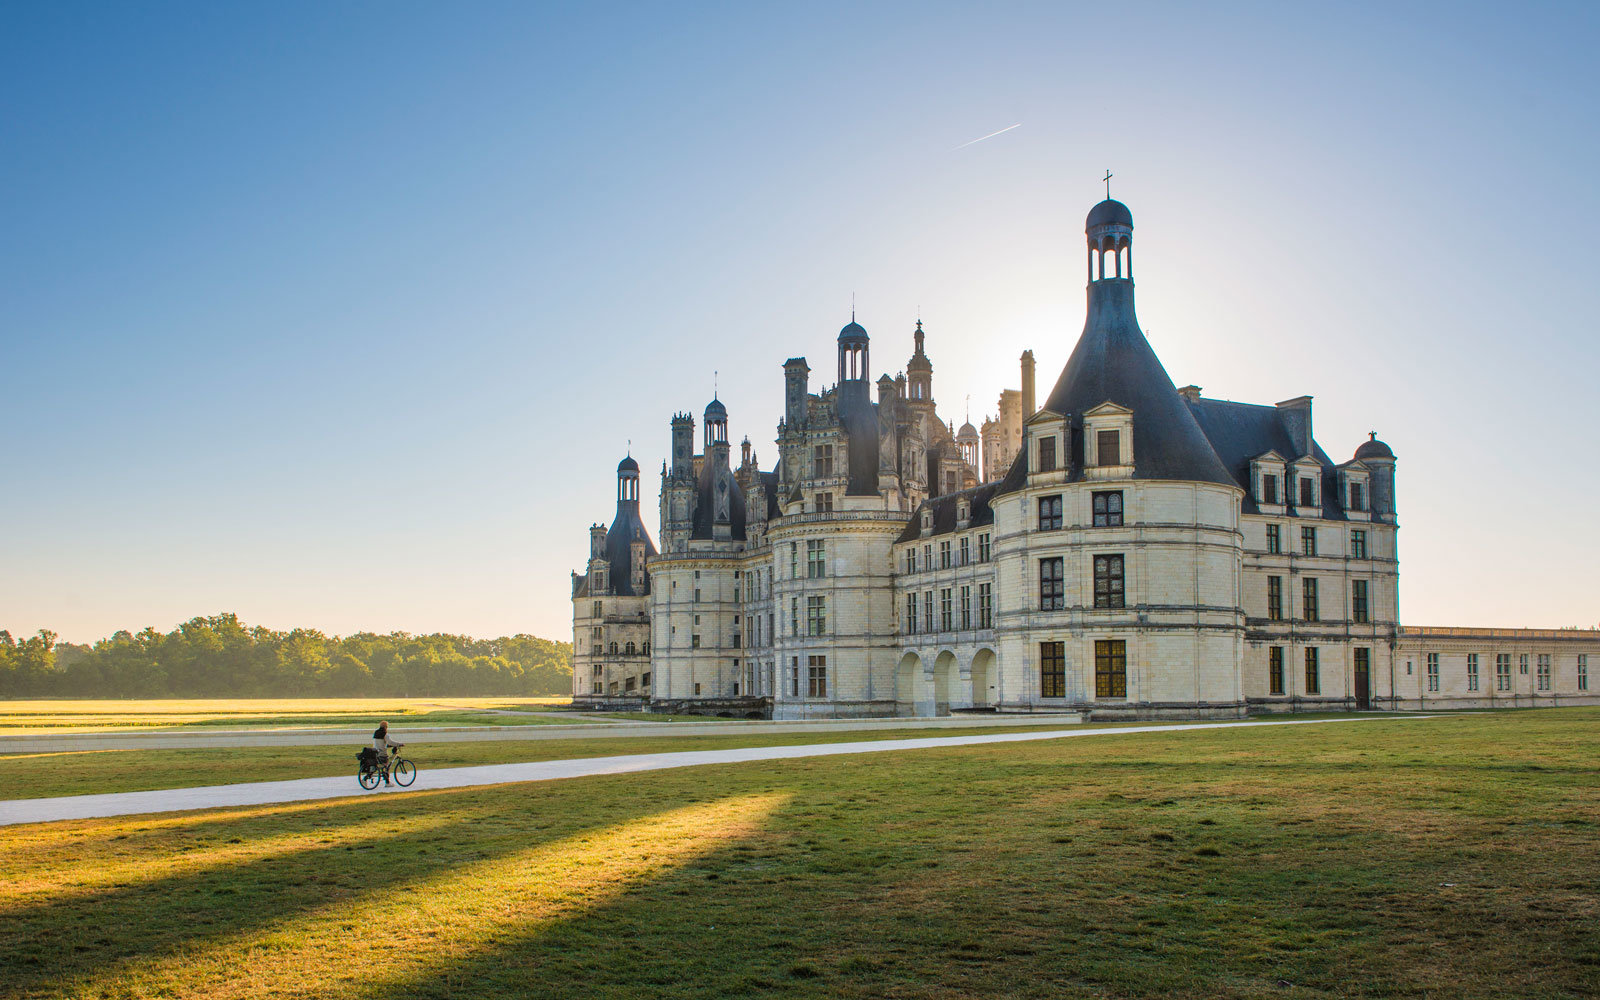 https://i0.wp.com/cdn-image.travelandleisure.com/sites/default/files/styles/1600x1000/public/1482865049/exterior-chateau-CHAMBORD1216.jpg